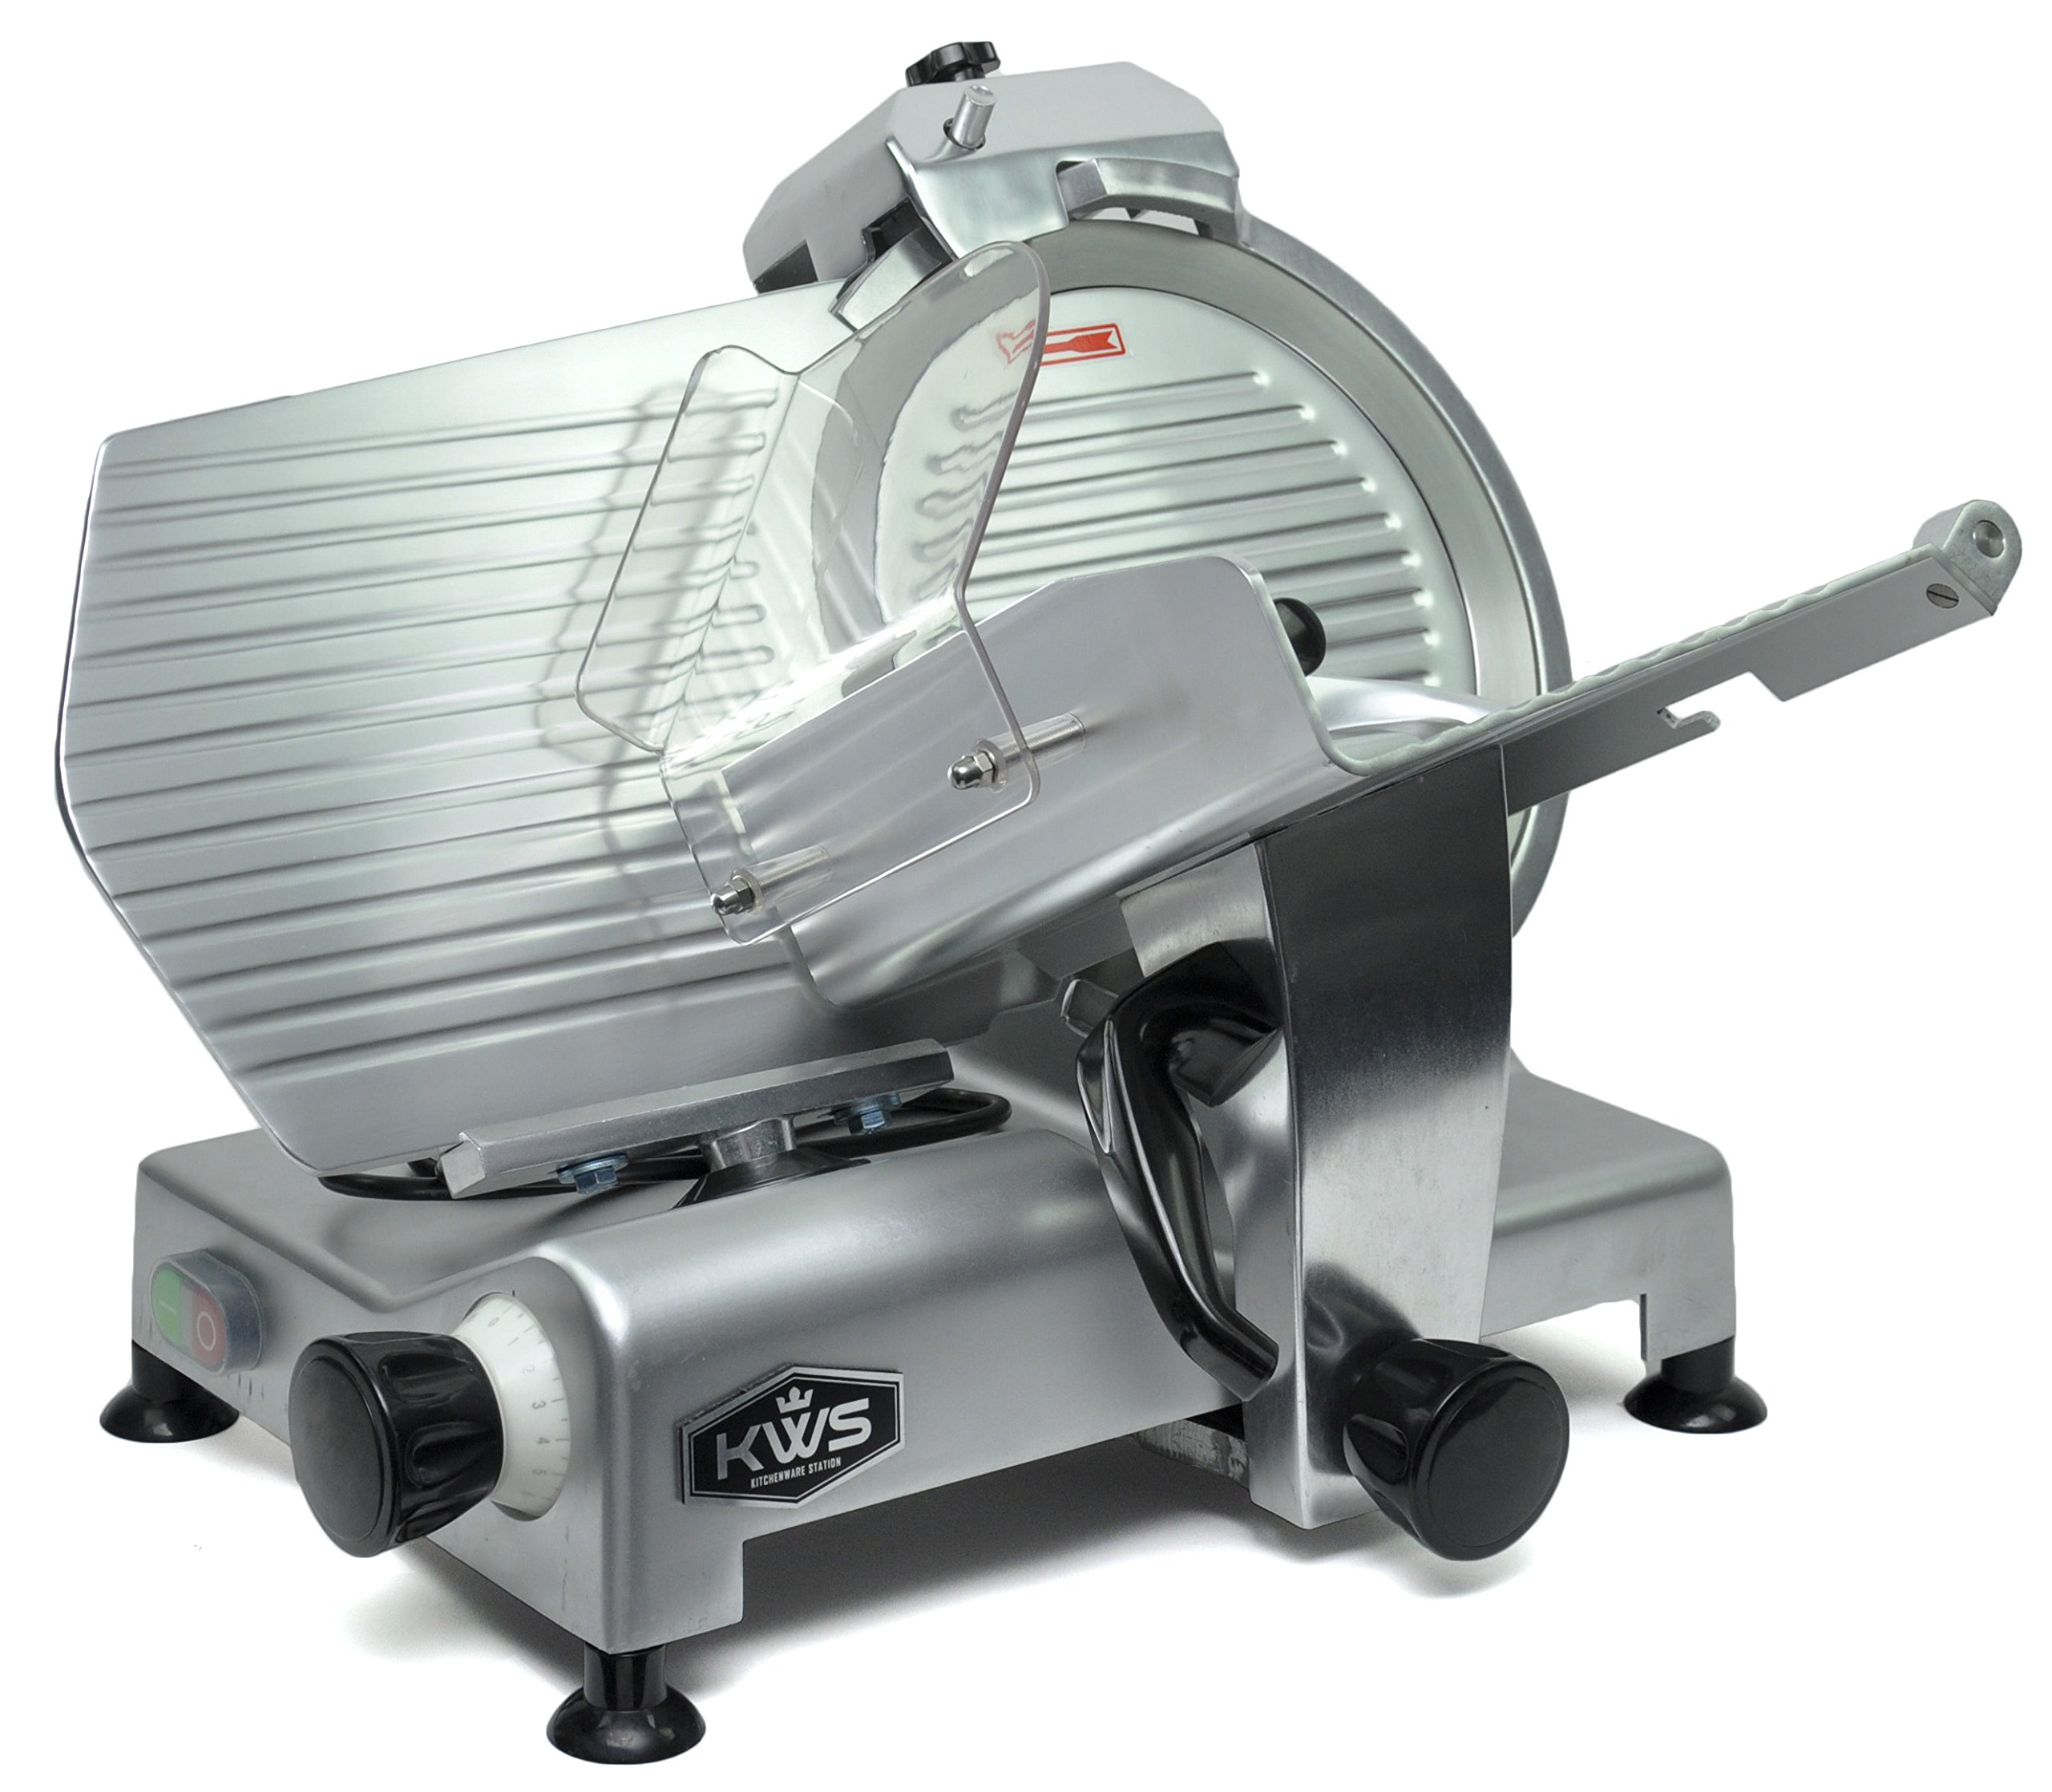 KWS MS-12NS Premium Commercial 420w Electric Meat Slicer 12-Inch Stainless Steel Blade, Frozen Meat/Cheese/Food Slicer Low Noises Commercial and Home Use by KitchenWare Station